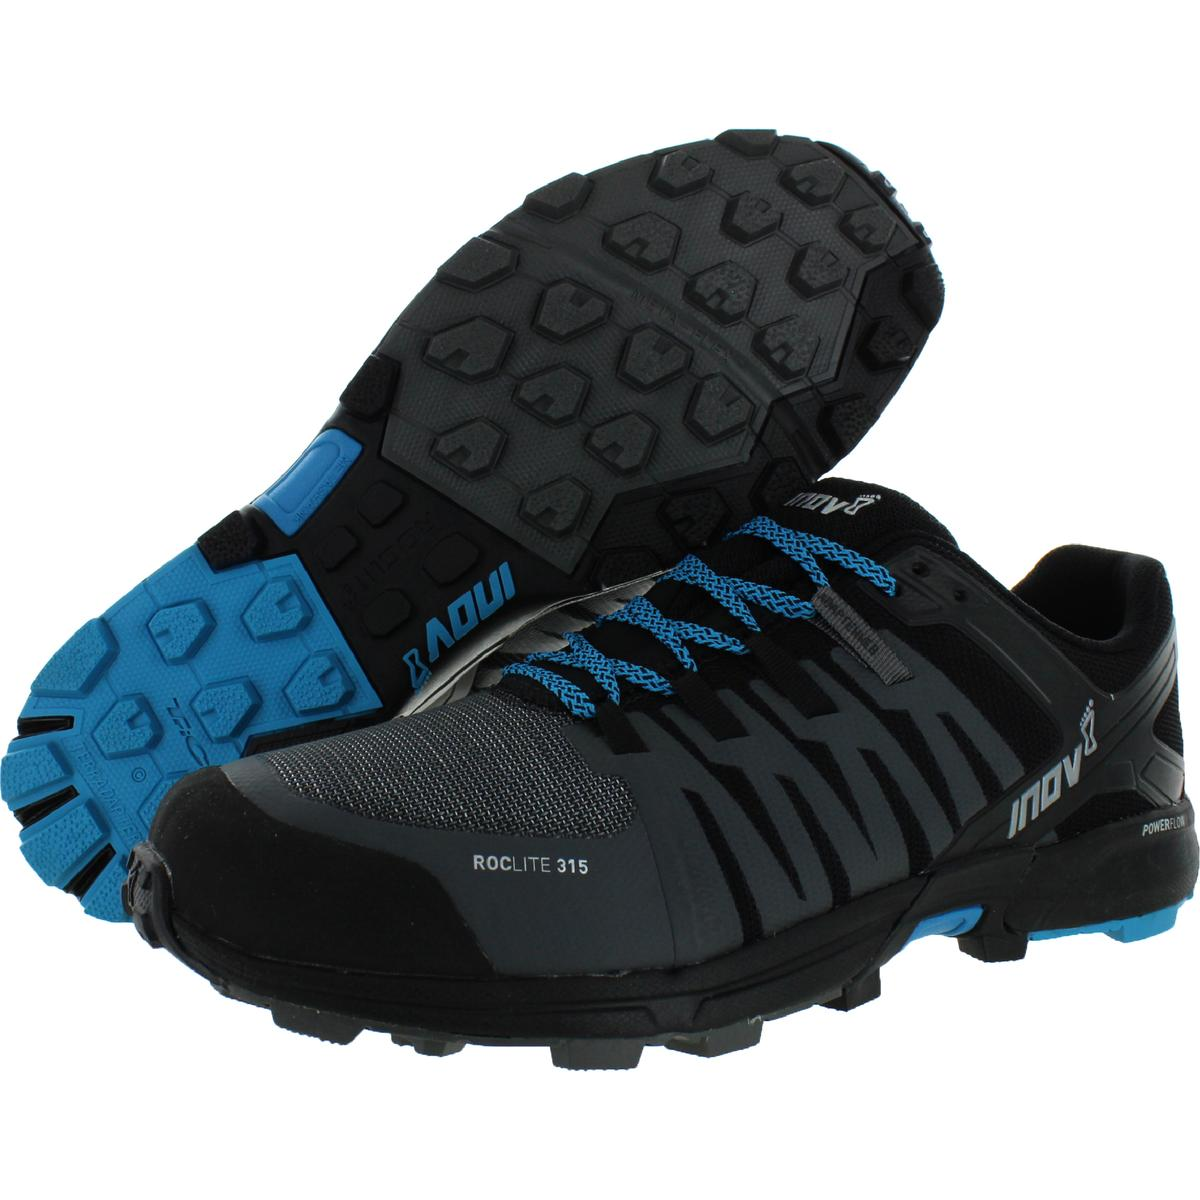 Inov-8 Mens RocLite 315 Lifestyle Trail Running Shoes Sneakers BHFO 9627